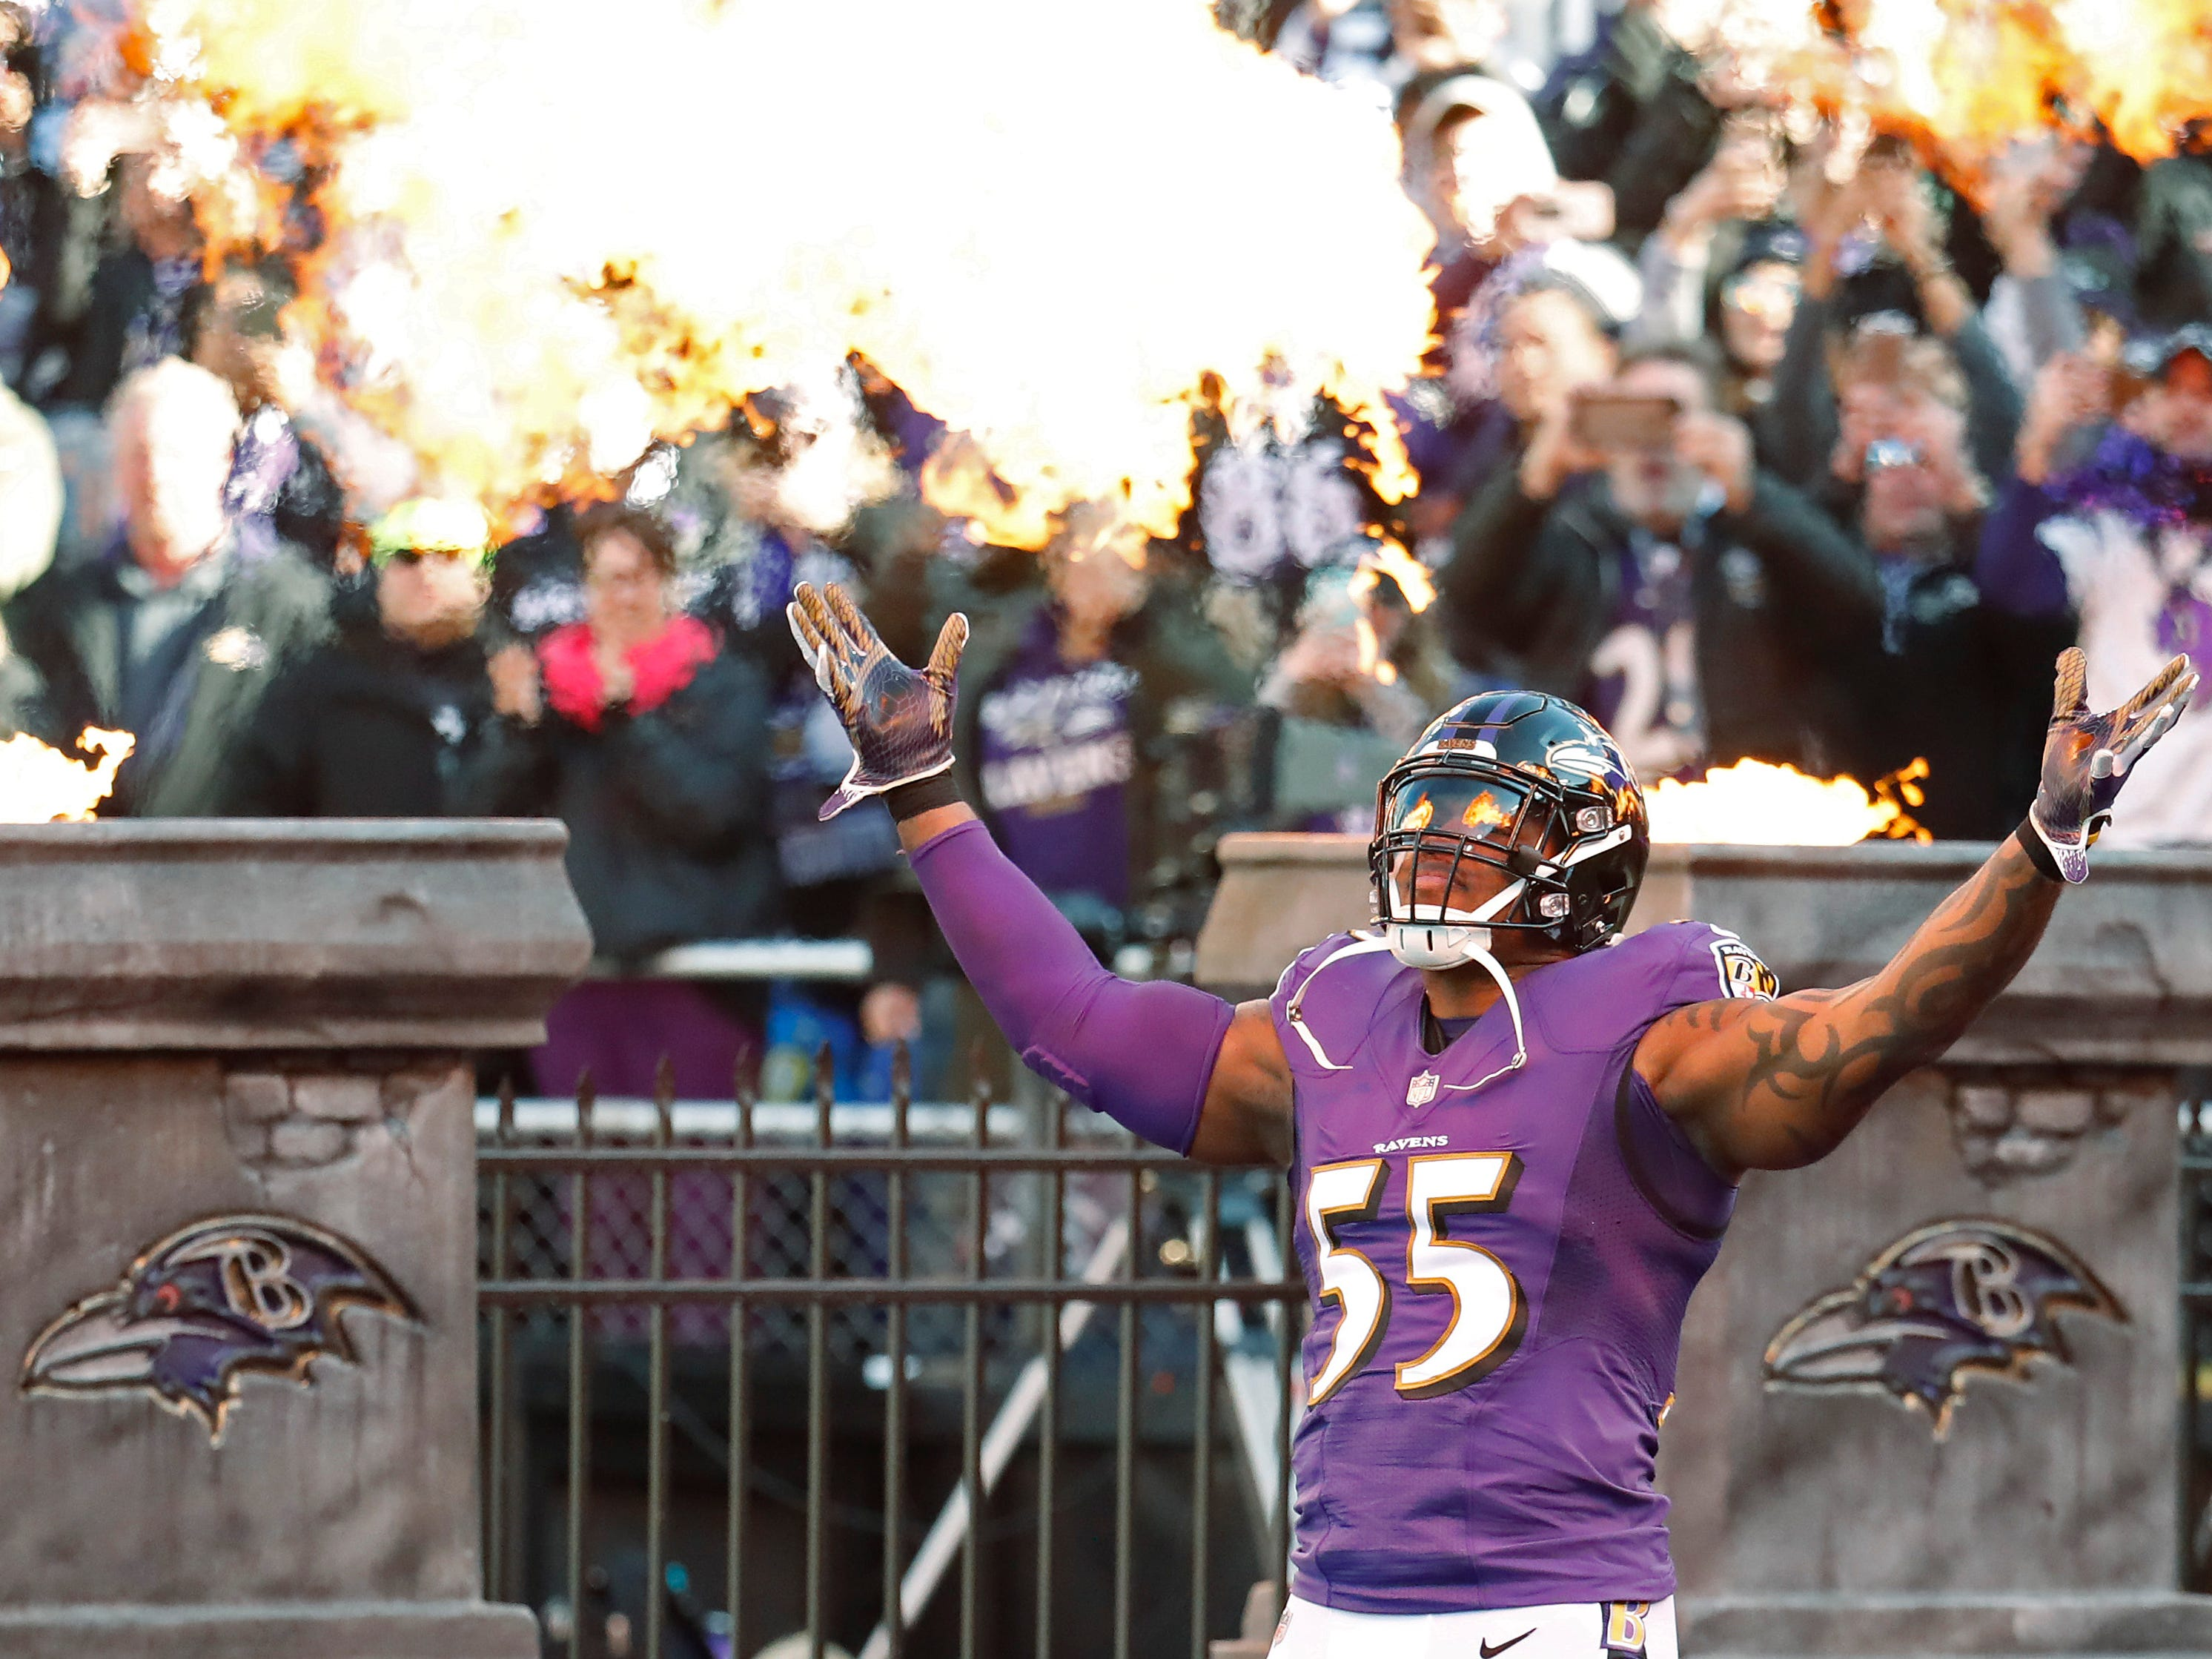 NR: Terrell Suggs, OLB, Ravens: Agreed to deal with Cardinals